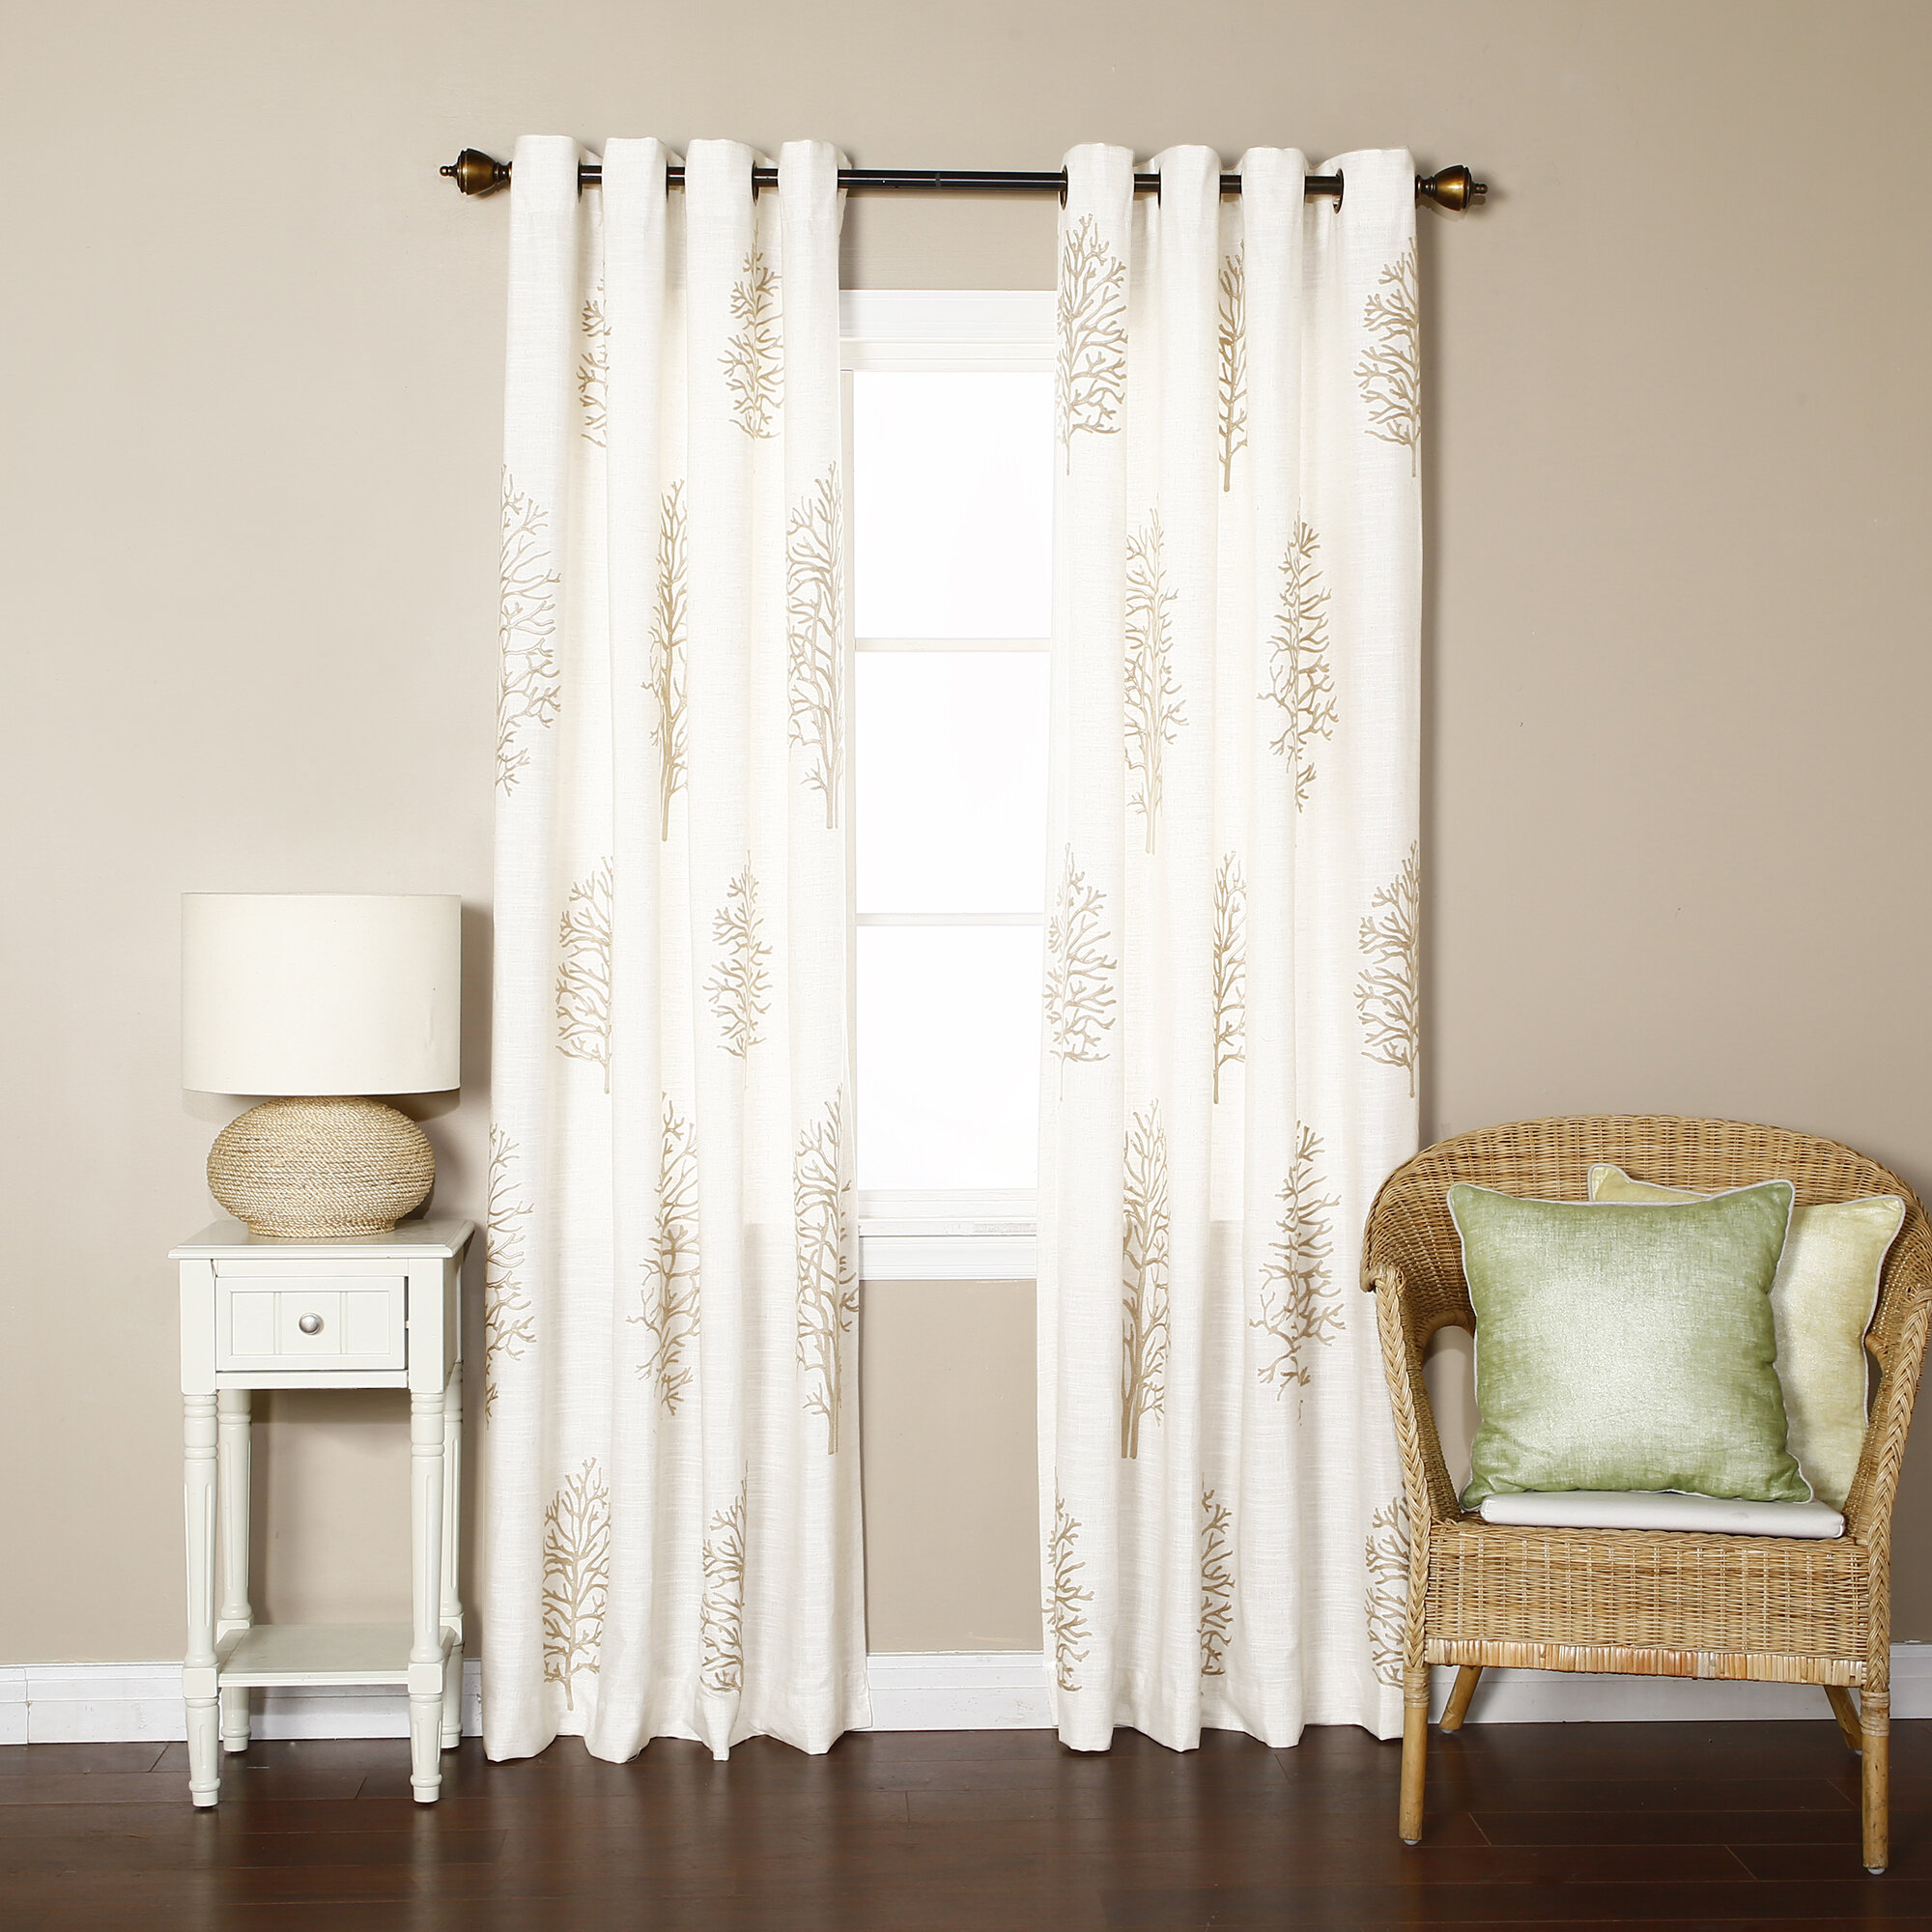 blackout curtain curtains reviews wayfair braswell panels thermal august linen pin grove